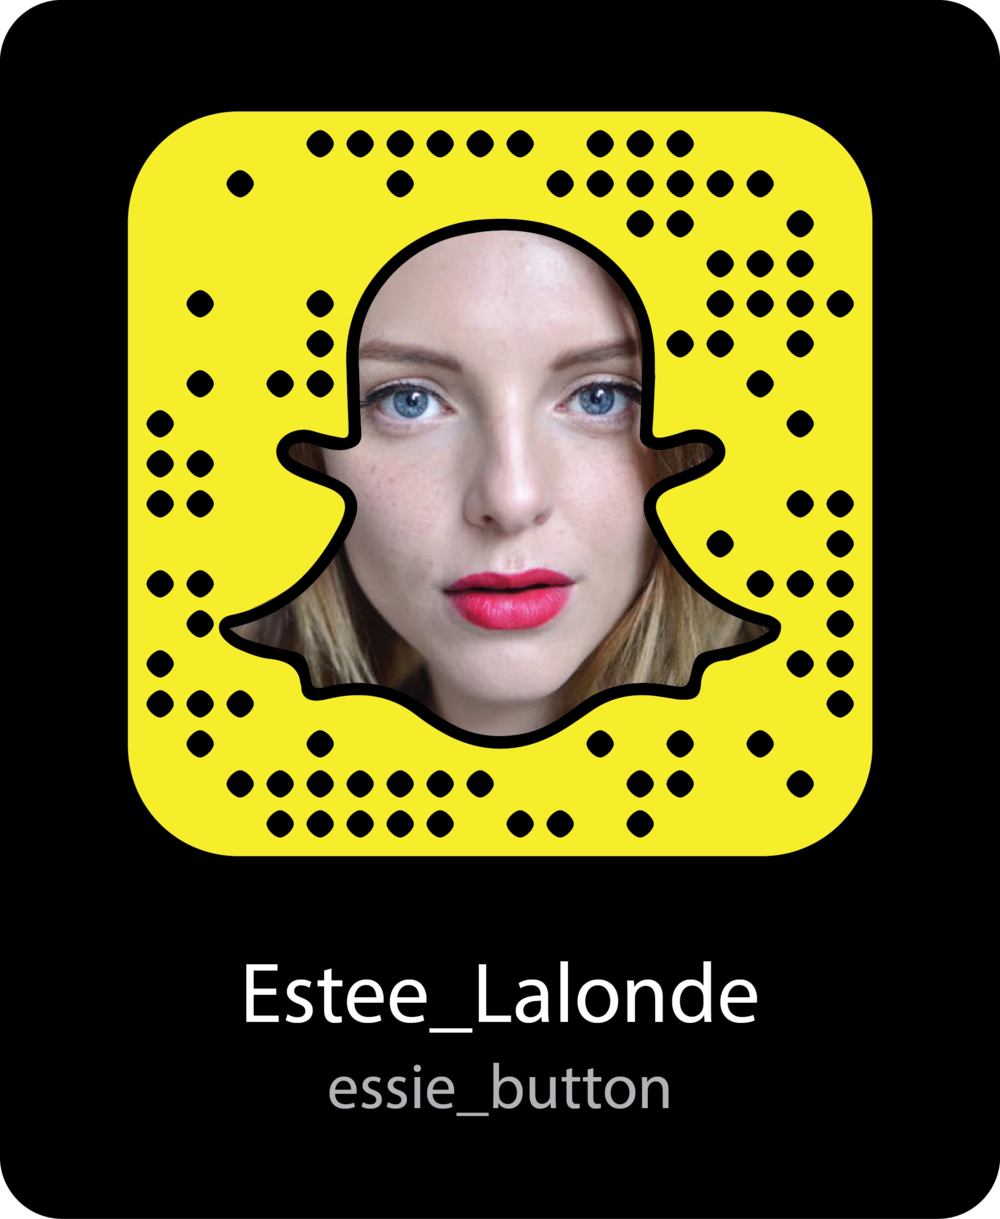 essie_button-Beauty-Bloggers-snapchat-snapcode.png